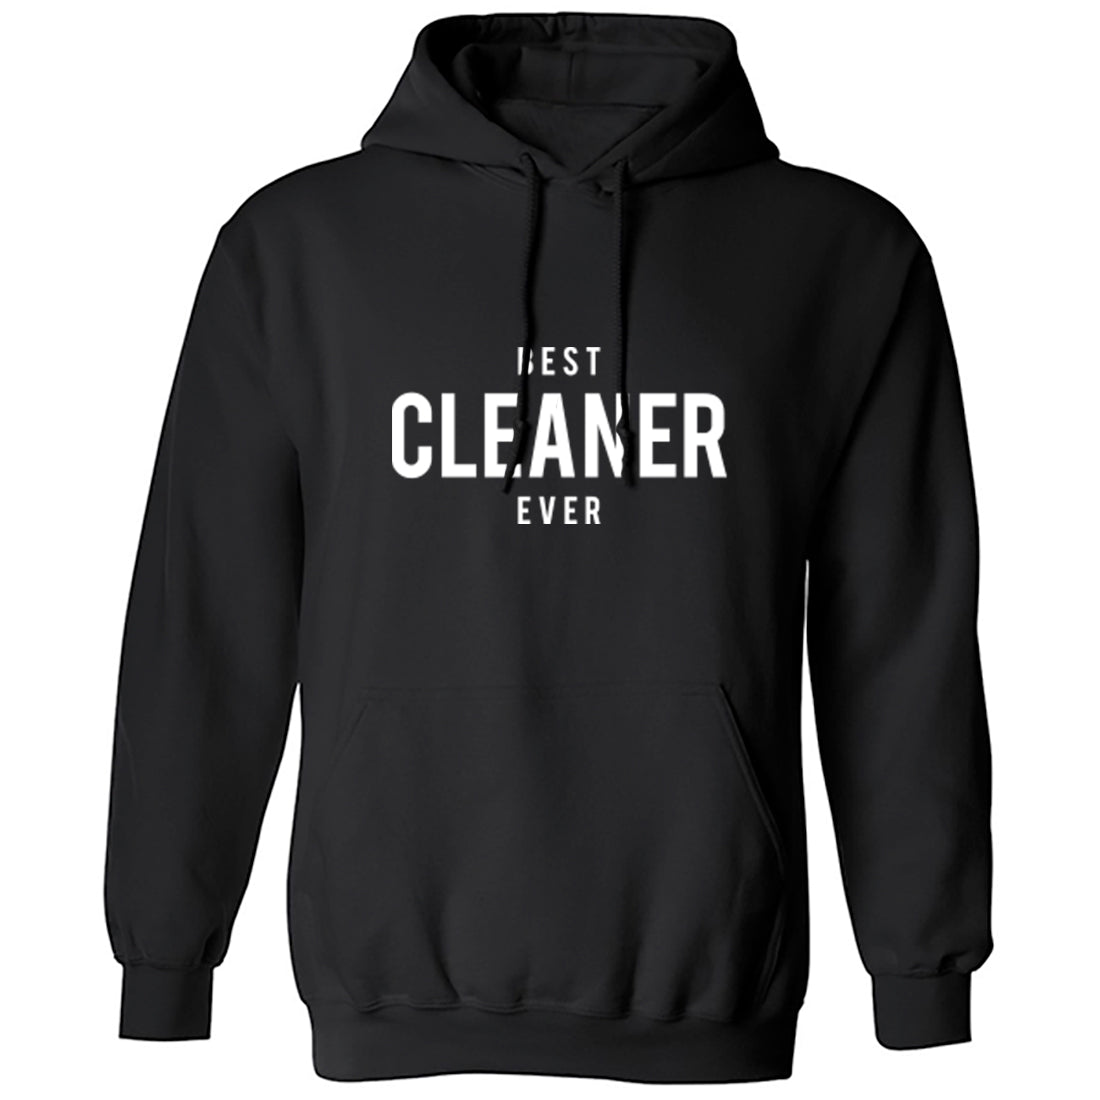 Best Cleaner Ever Unisex Hoodie K1516 - Illustrated Identity Ltd.